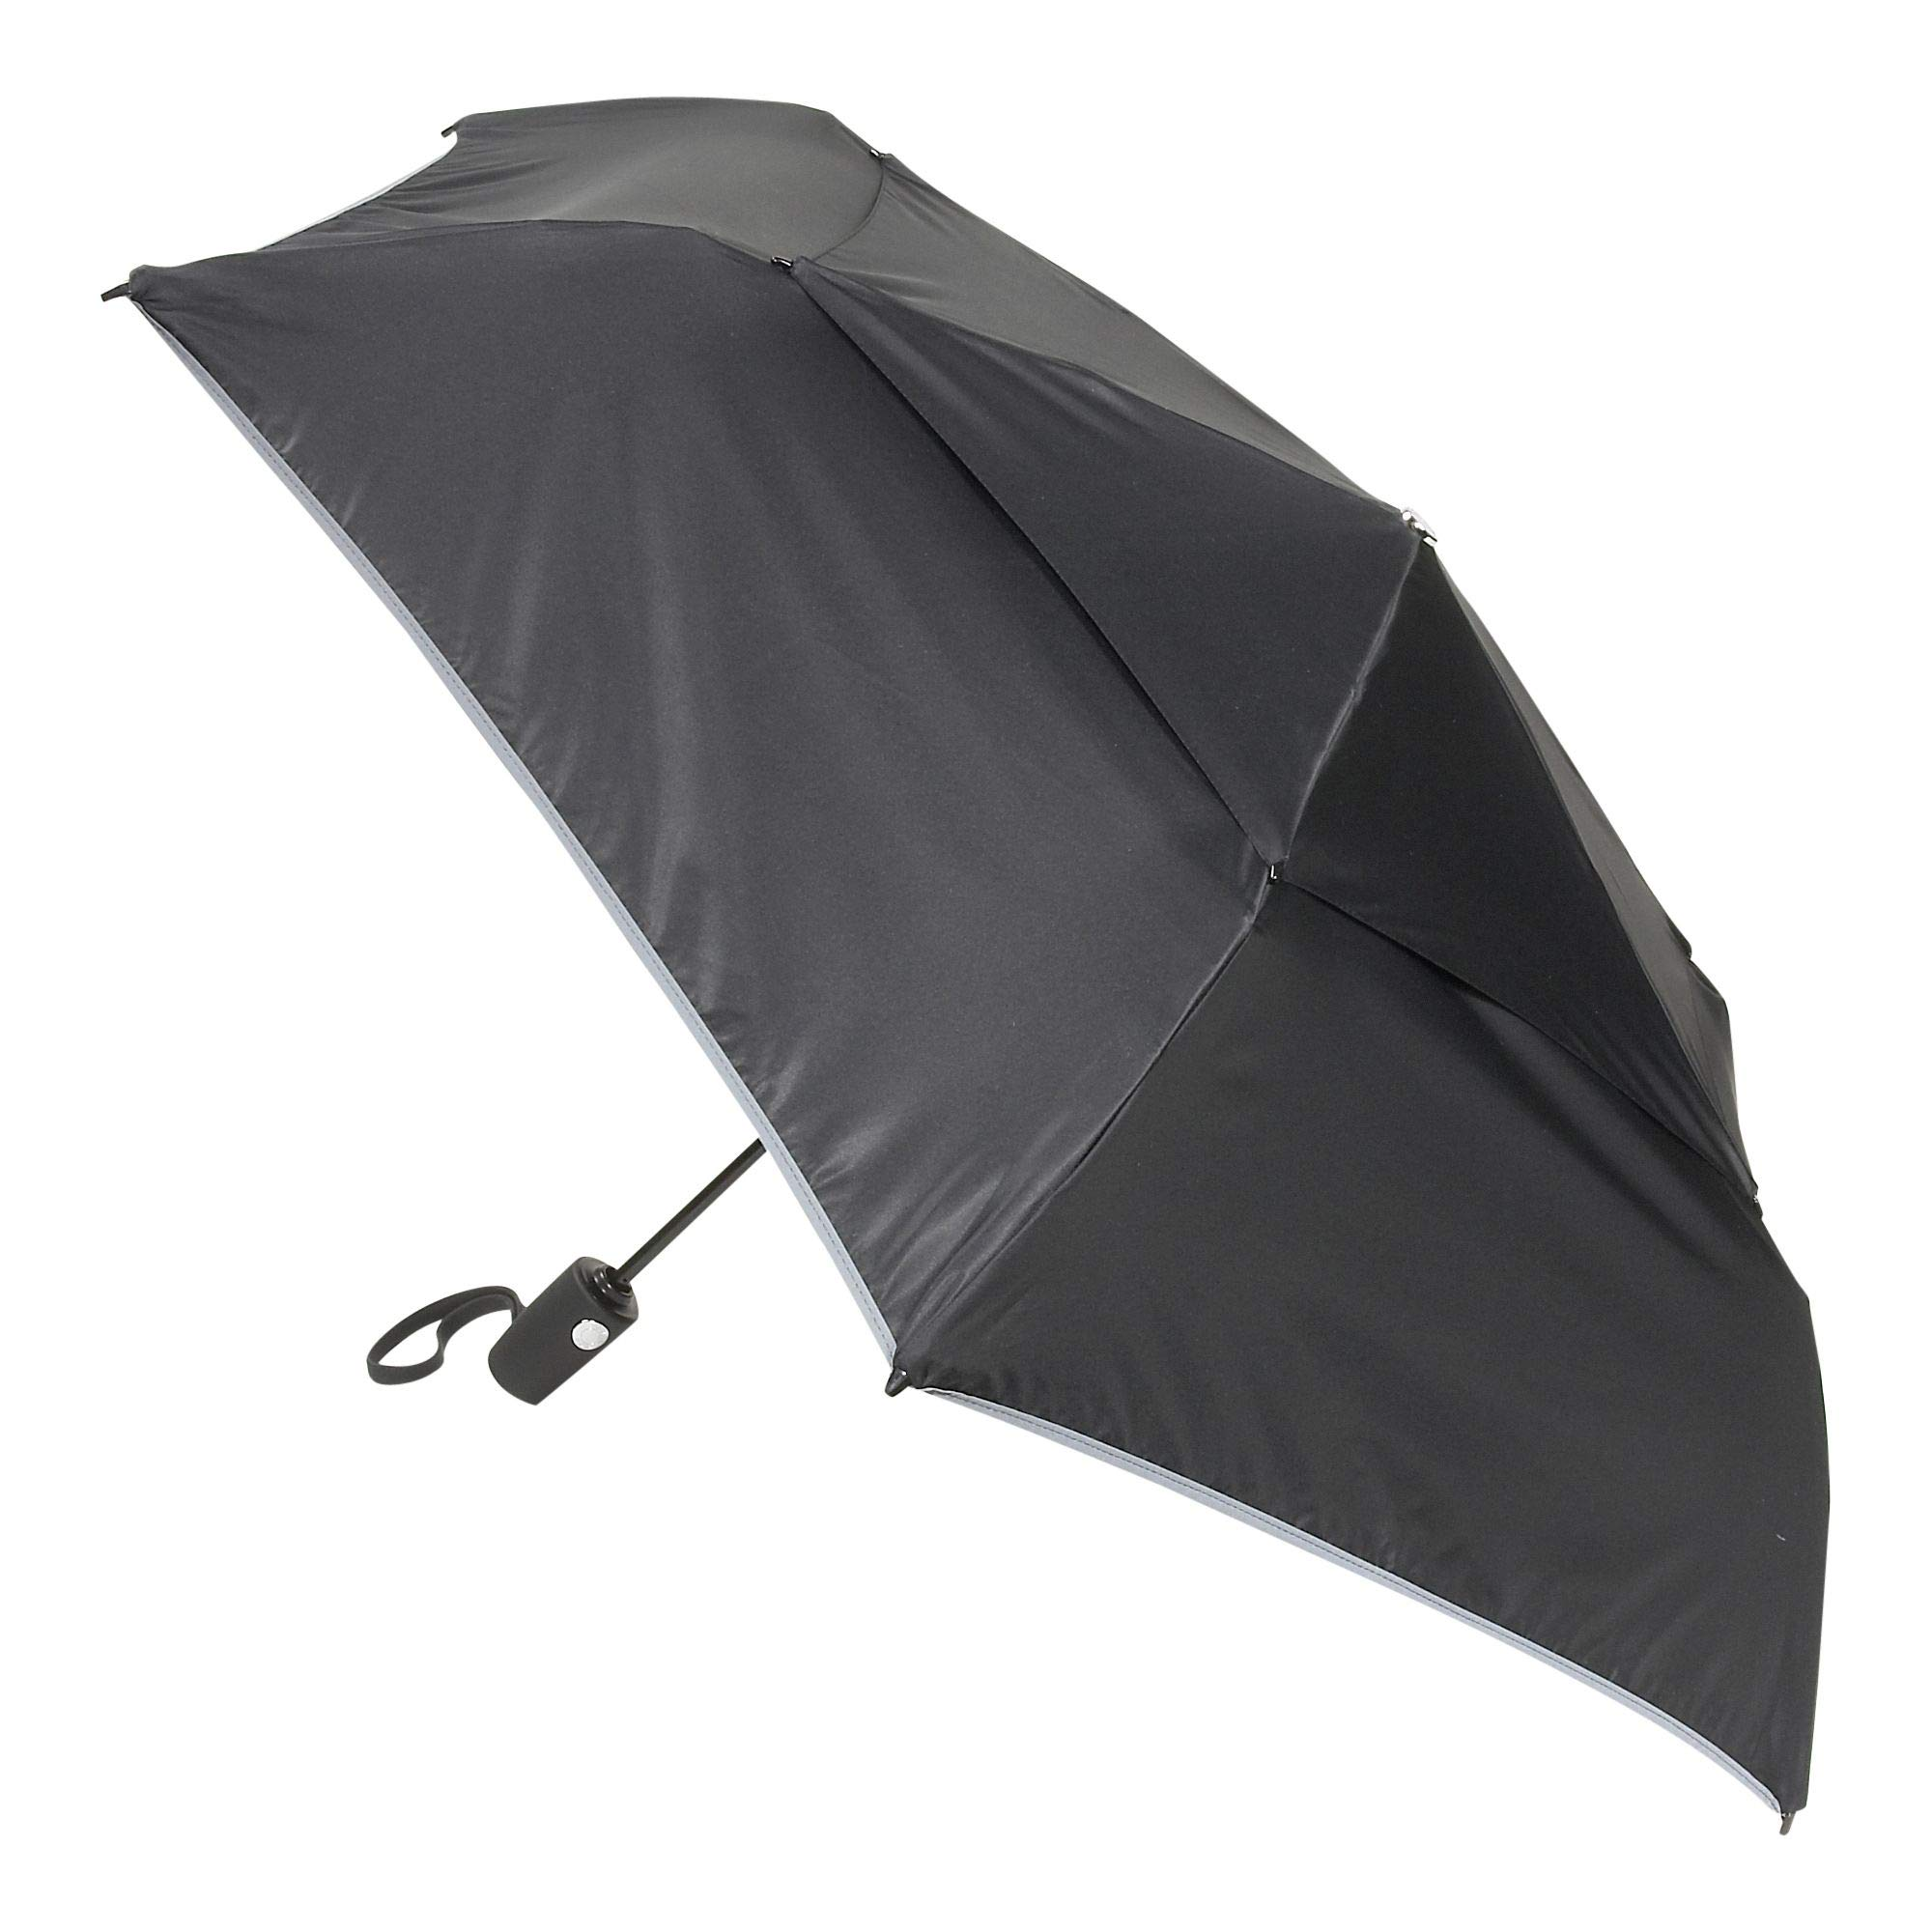 TUMI - Auto Close Umbrella - Windproof Compact Travel Umbrella - Medium - Black